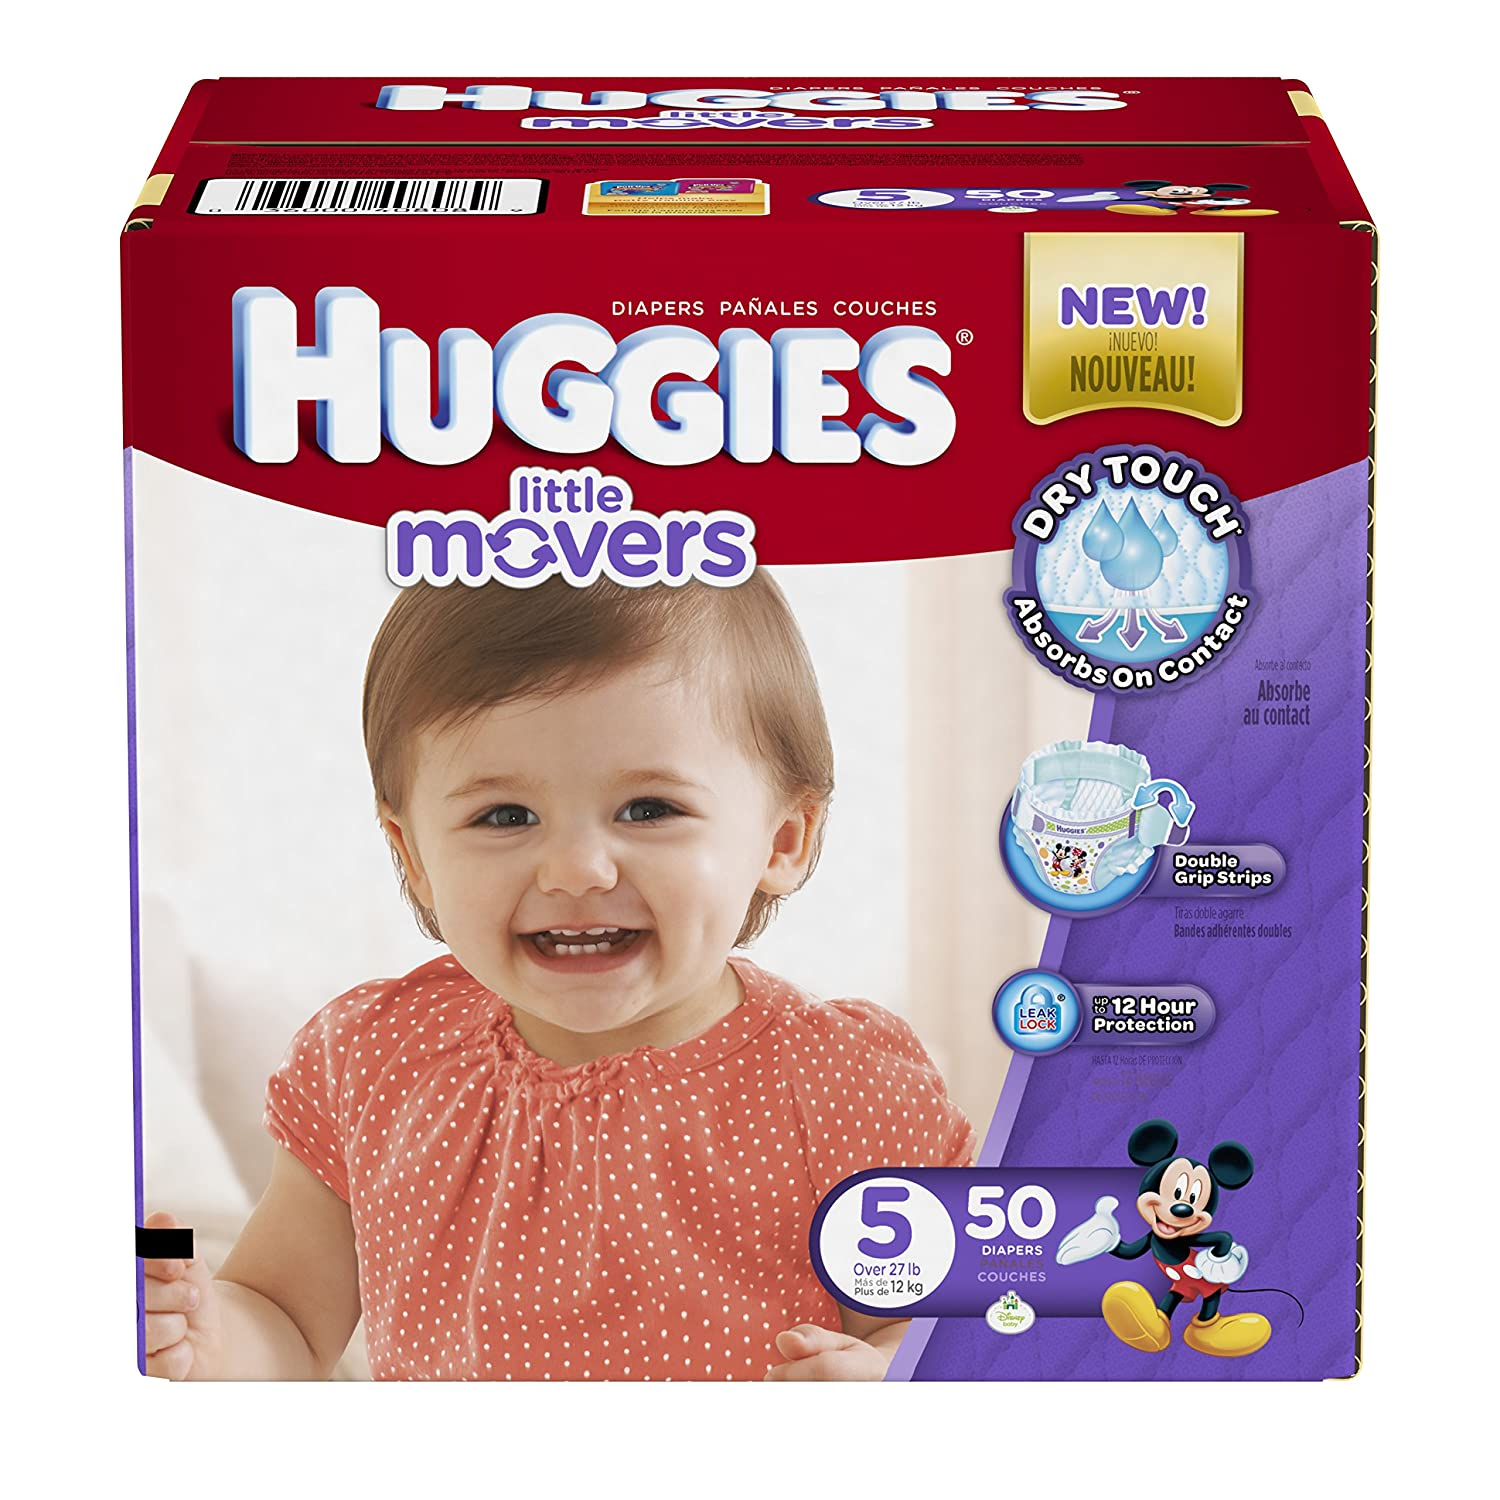 Amazon.com: Huggies Little Movers Diapers, Size 5, 50 Count (Packaging may vary): Prime Pantry